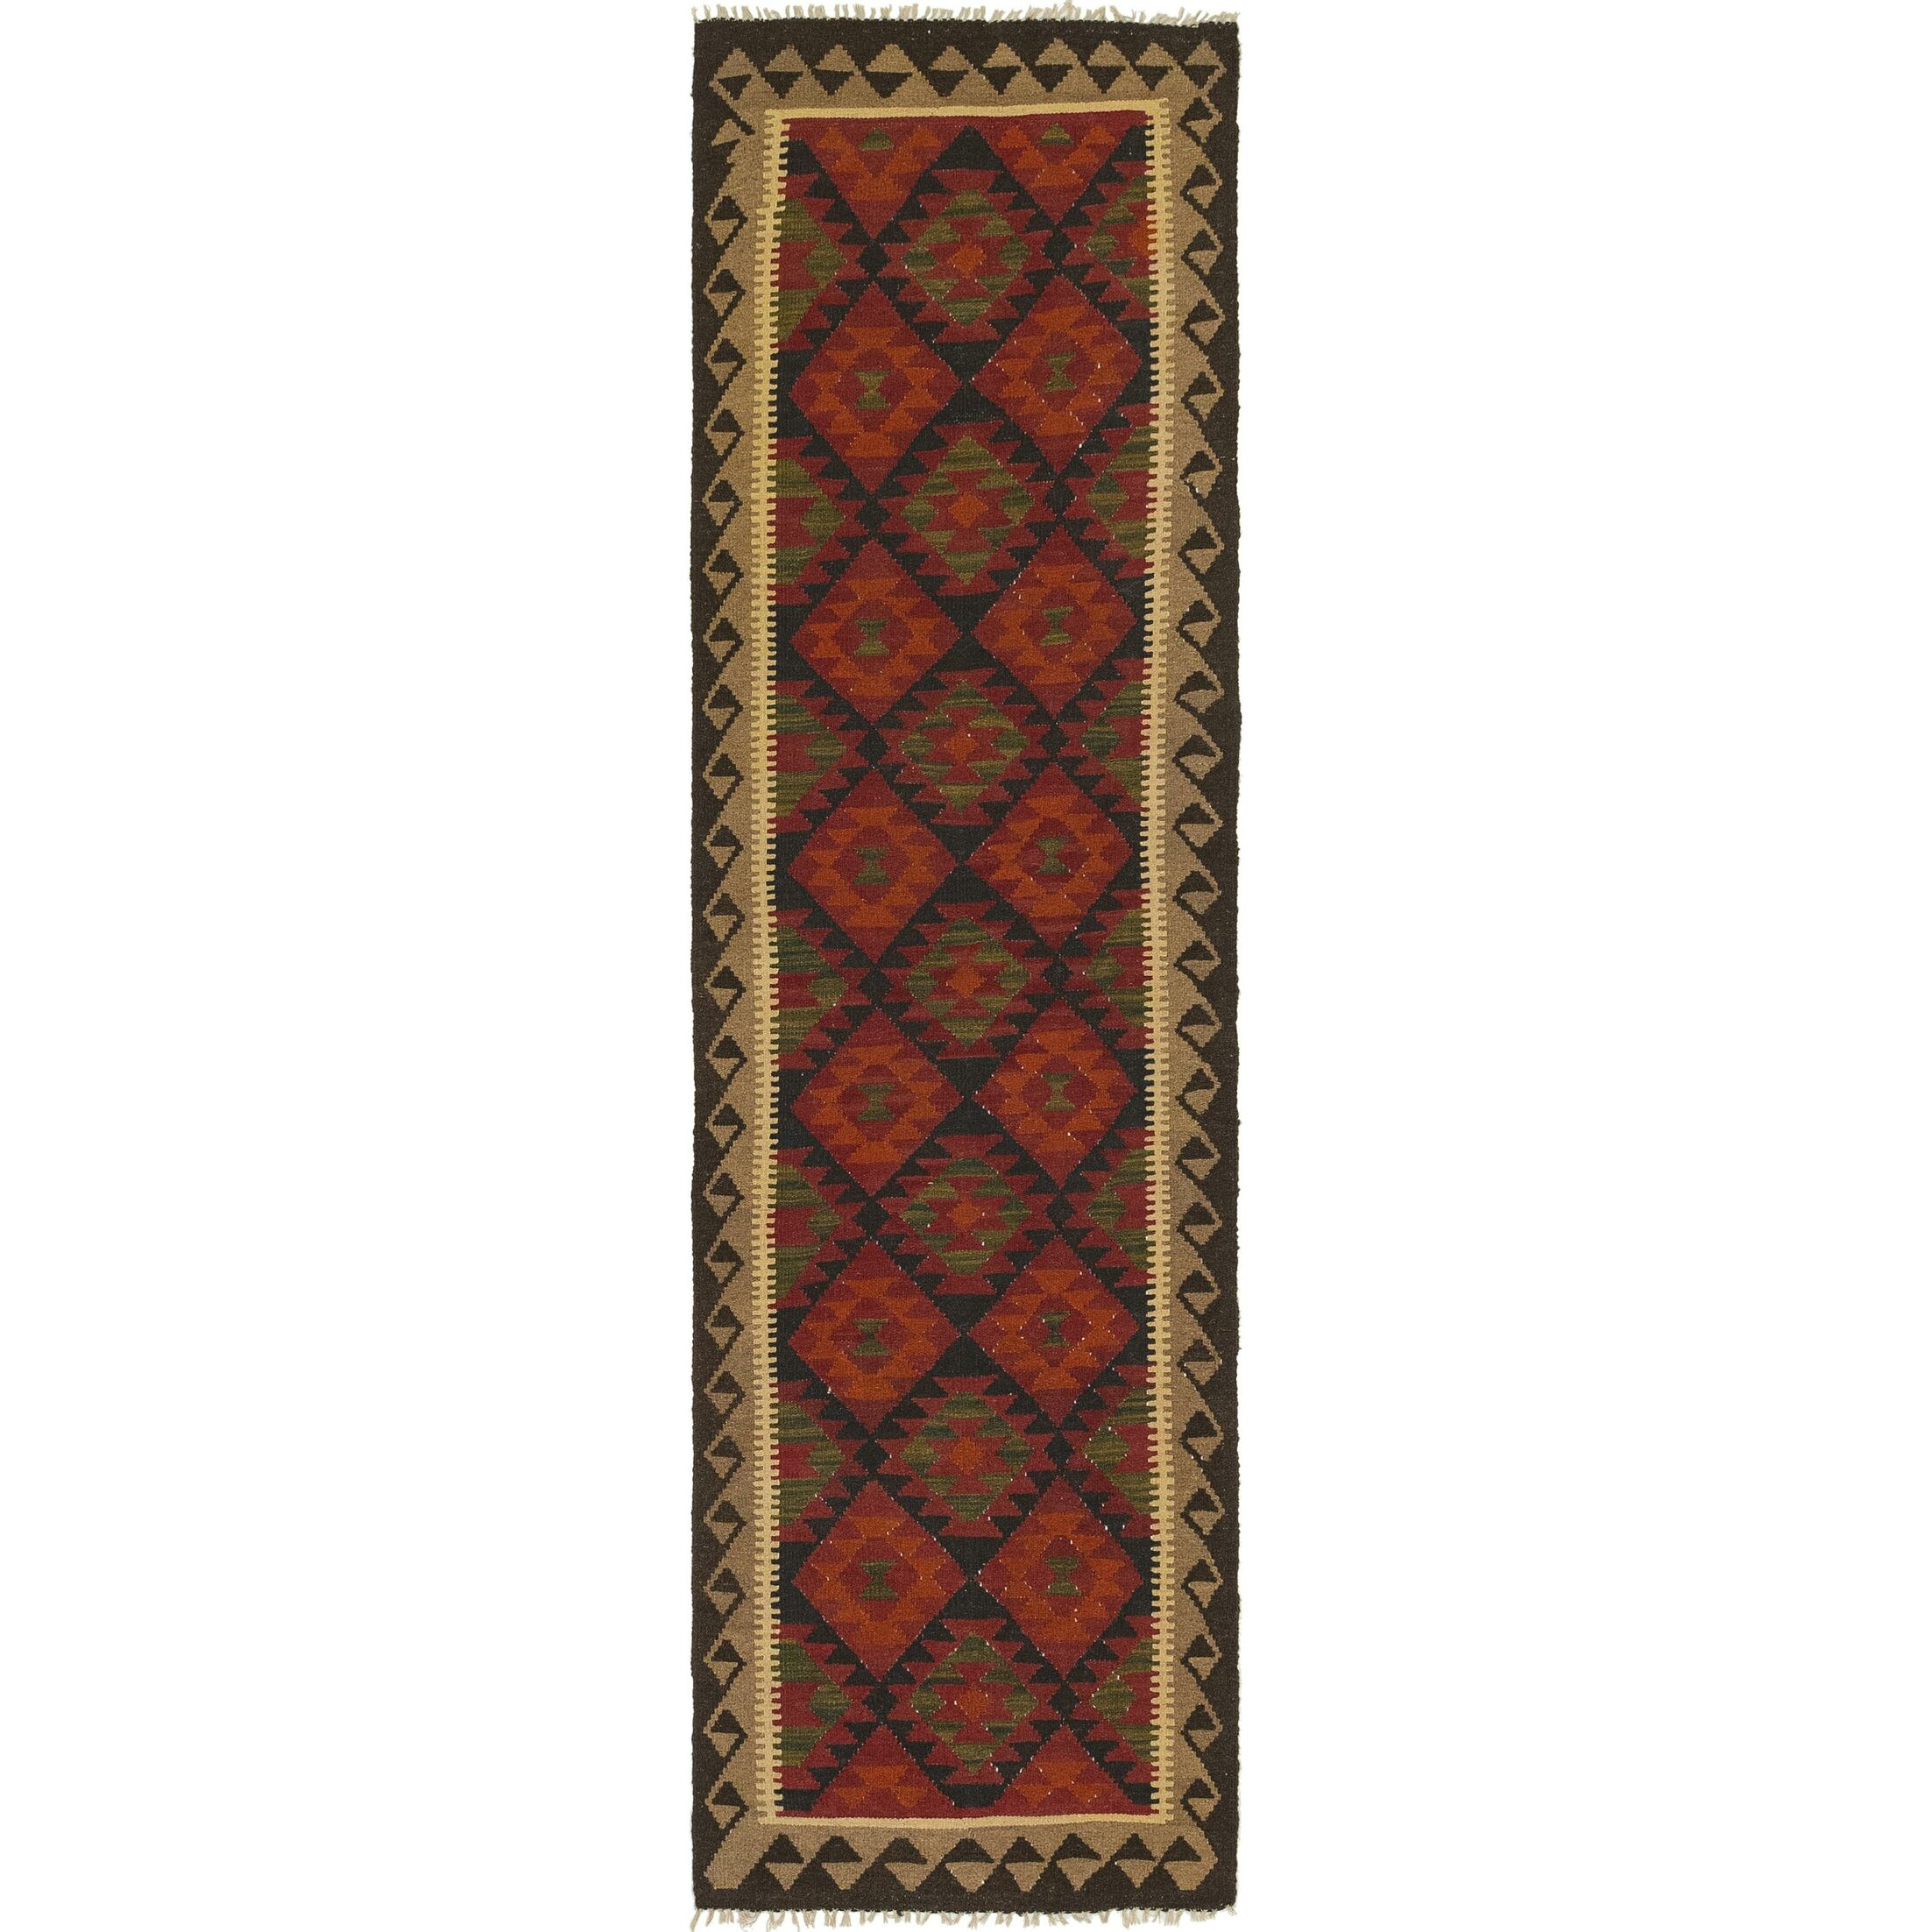 One-of-a-Kind Lorain Hand-Knotted Runner 2'8